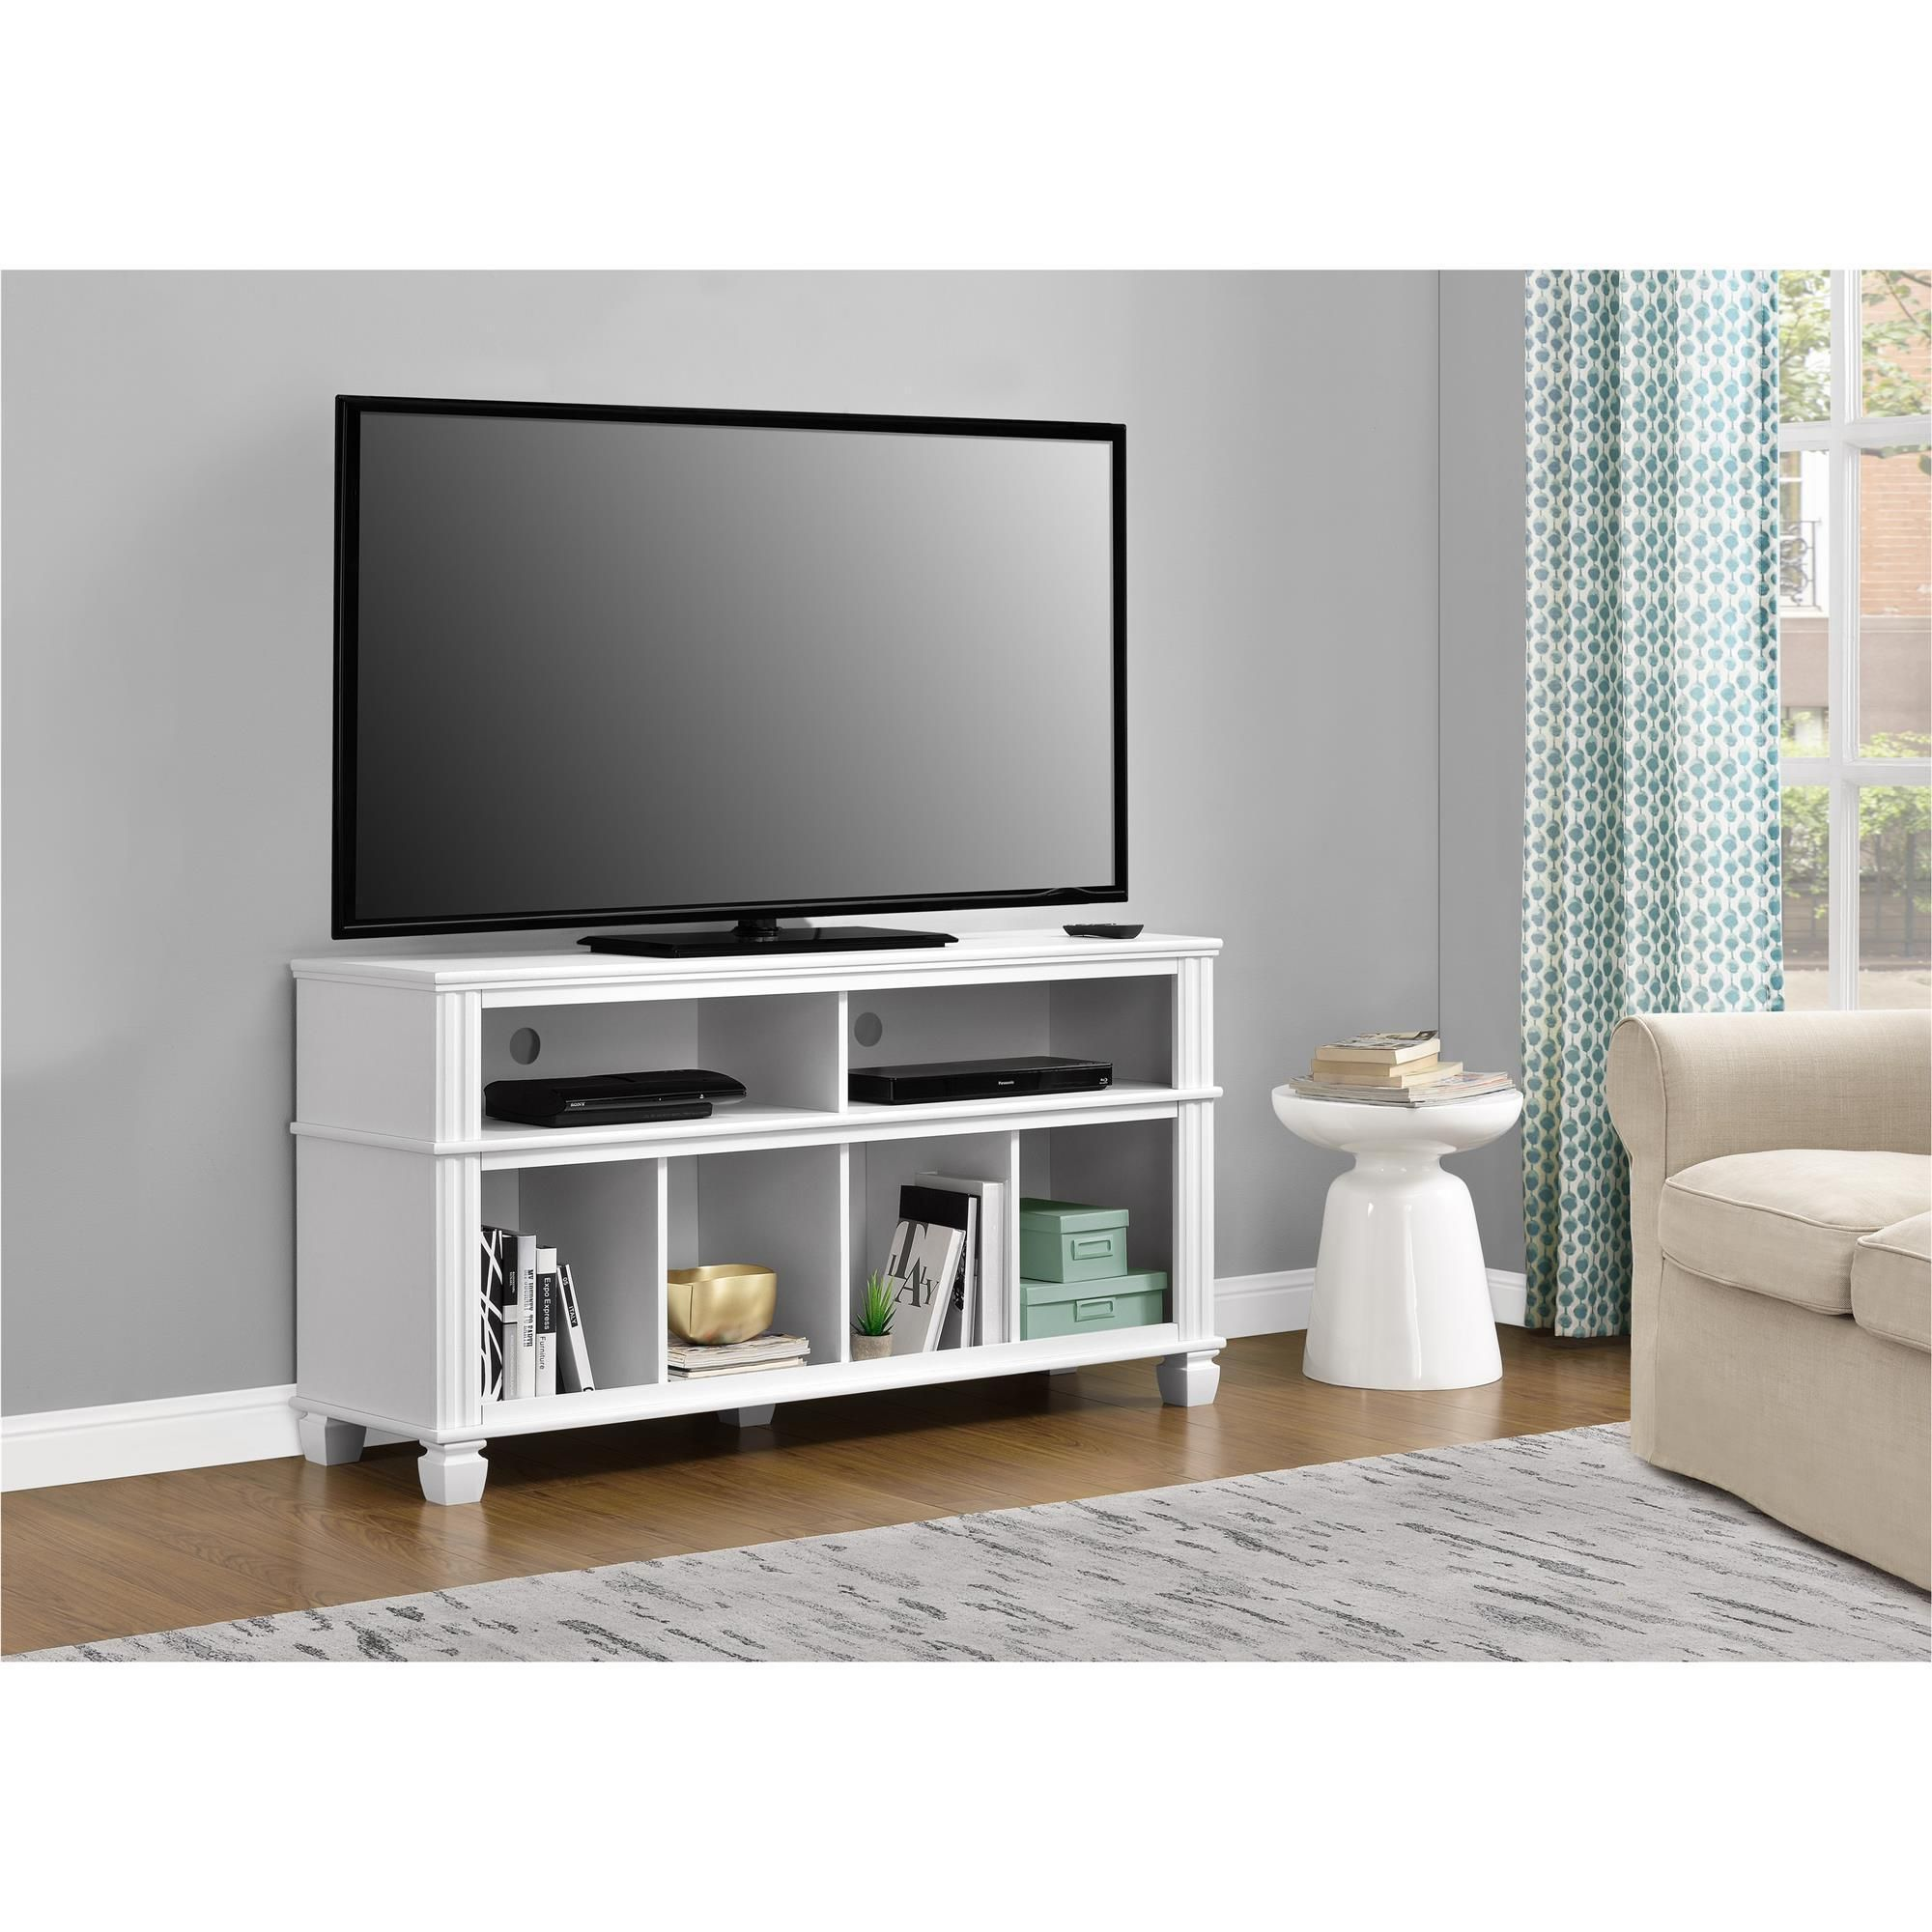 Home Woodcrest White 55 Inch Tv Stand Tv Stand White  # Meuble A Ecran Plat Dans Une Chambre